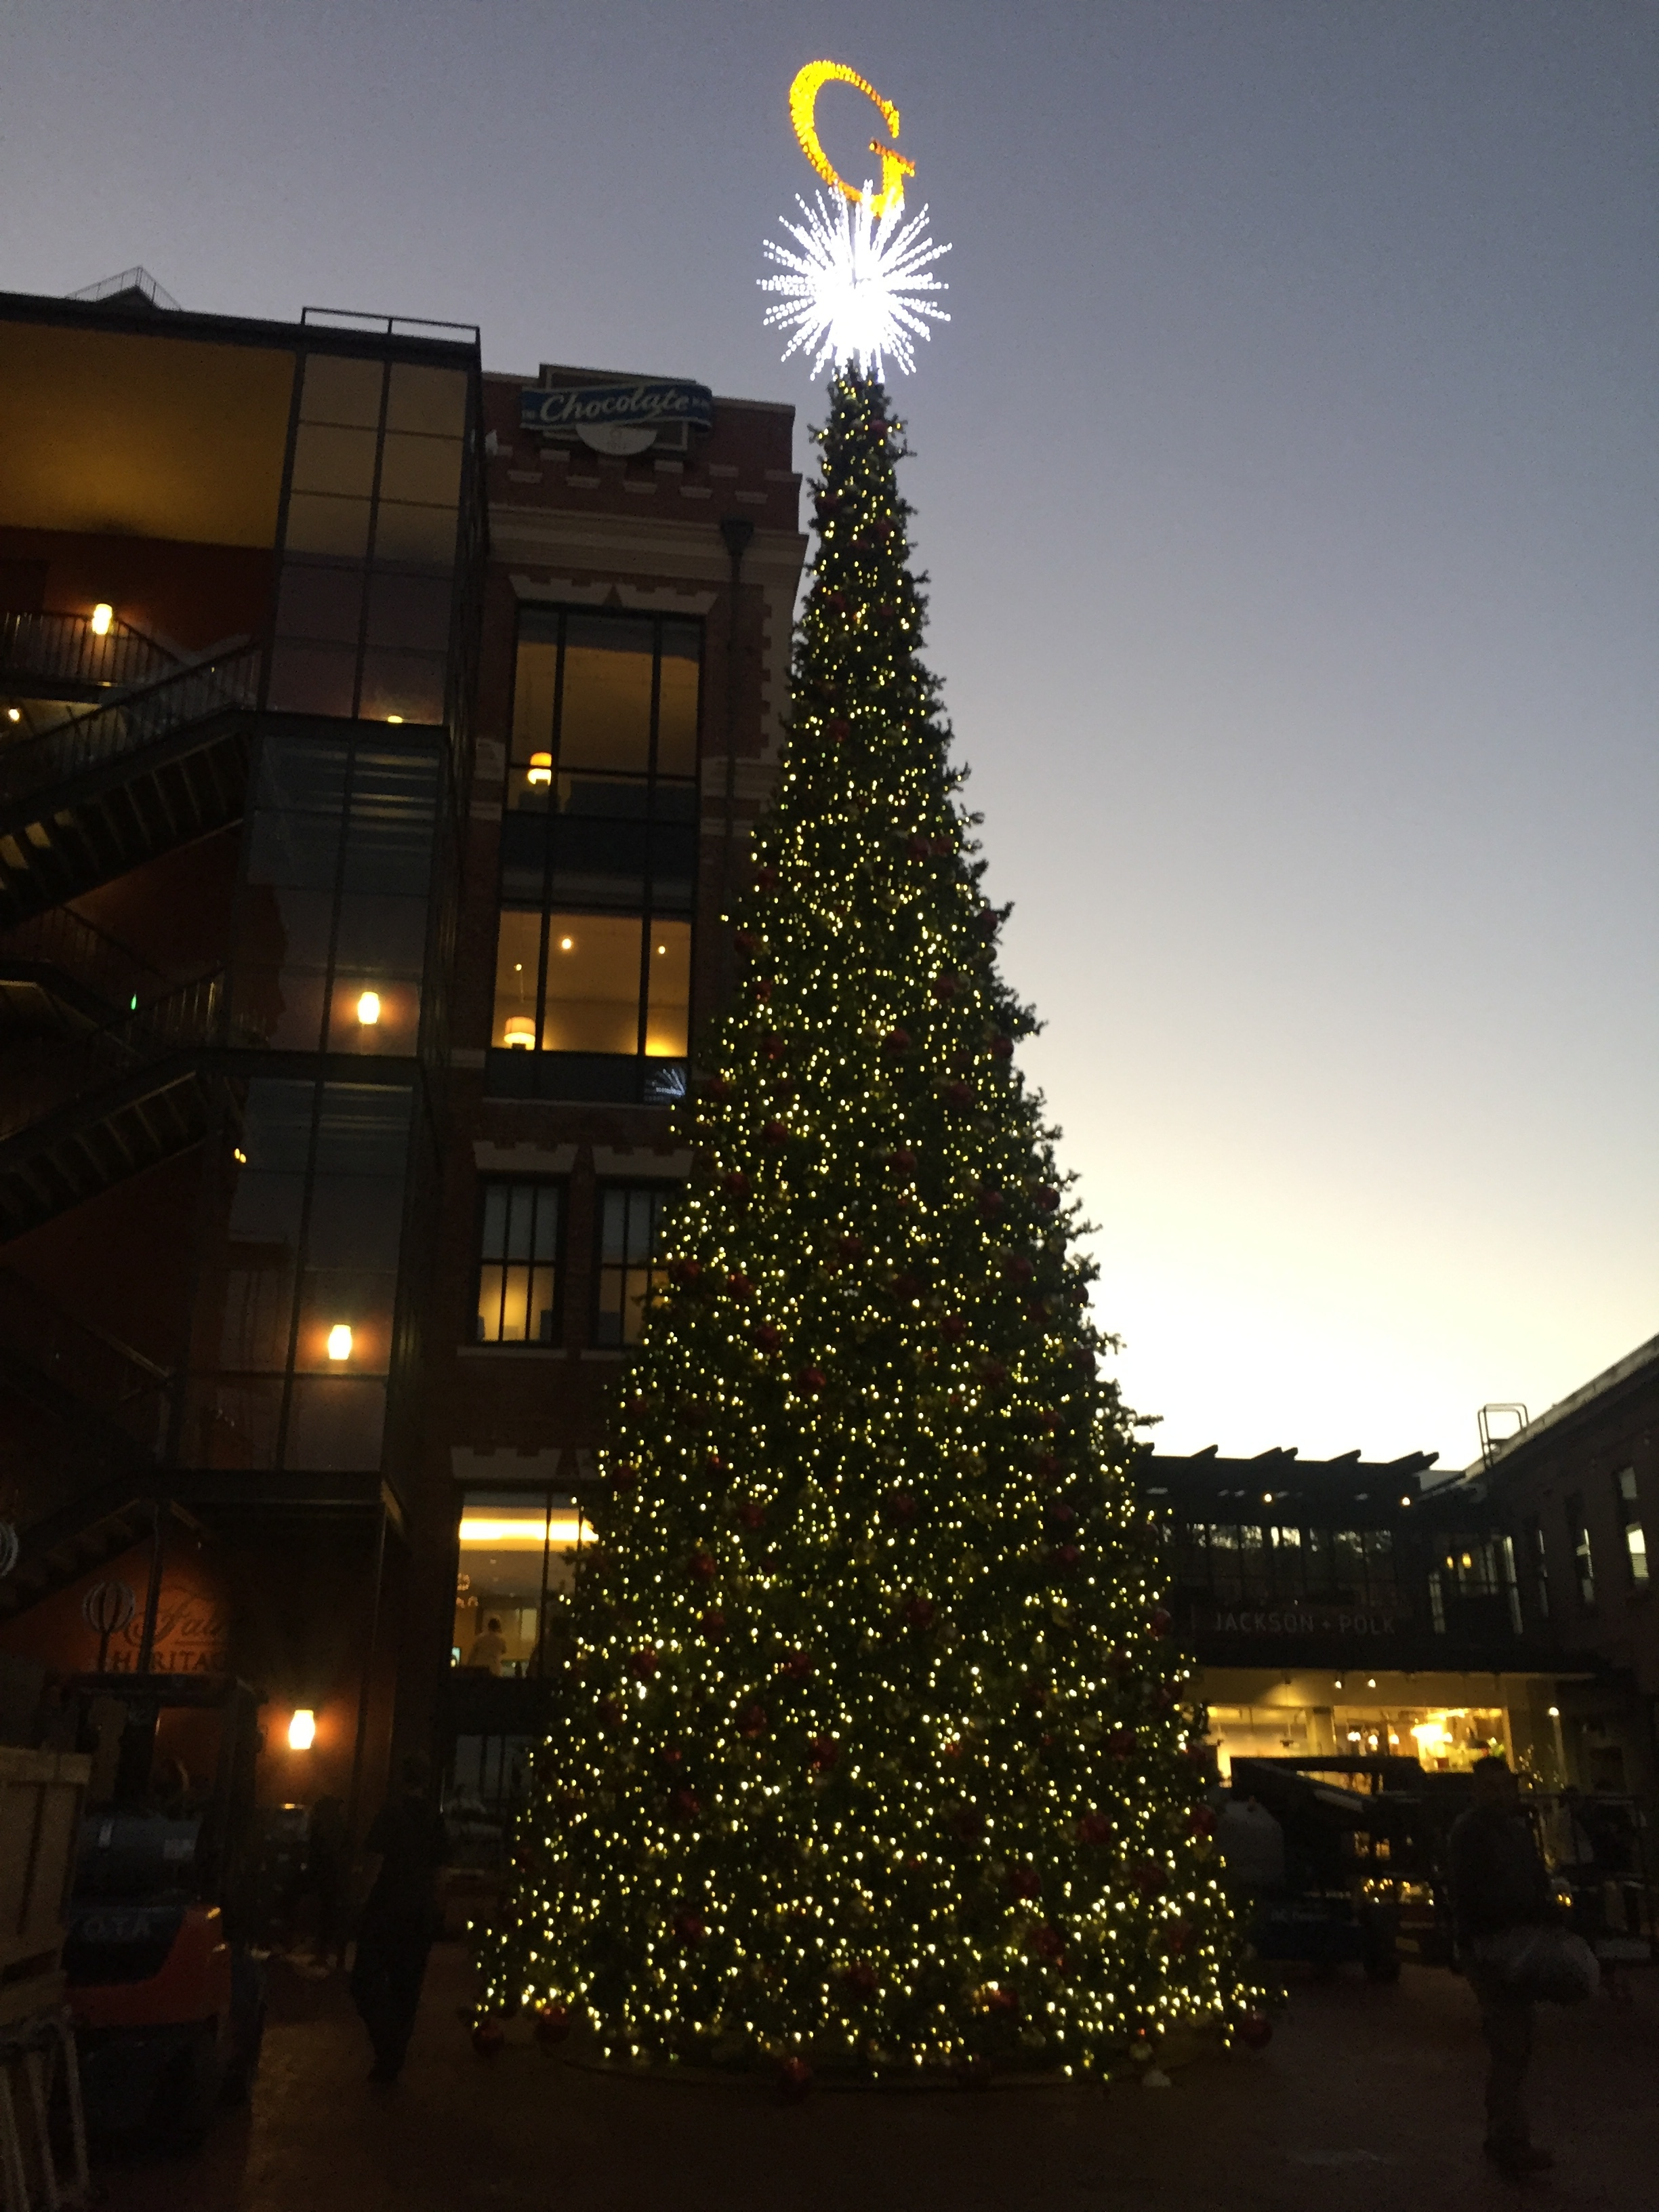 Christmas installations at various SF Bay area locations such as Ghirardelli Square, Crocker Galleria, JW Marriott, Stonestown Galleria, Heart of the Valley Pediatric Cardiology, Del Monte Center.